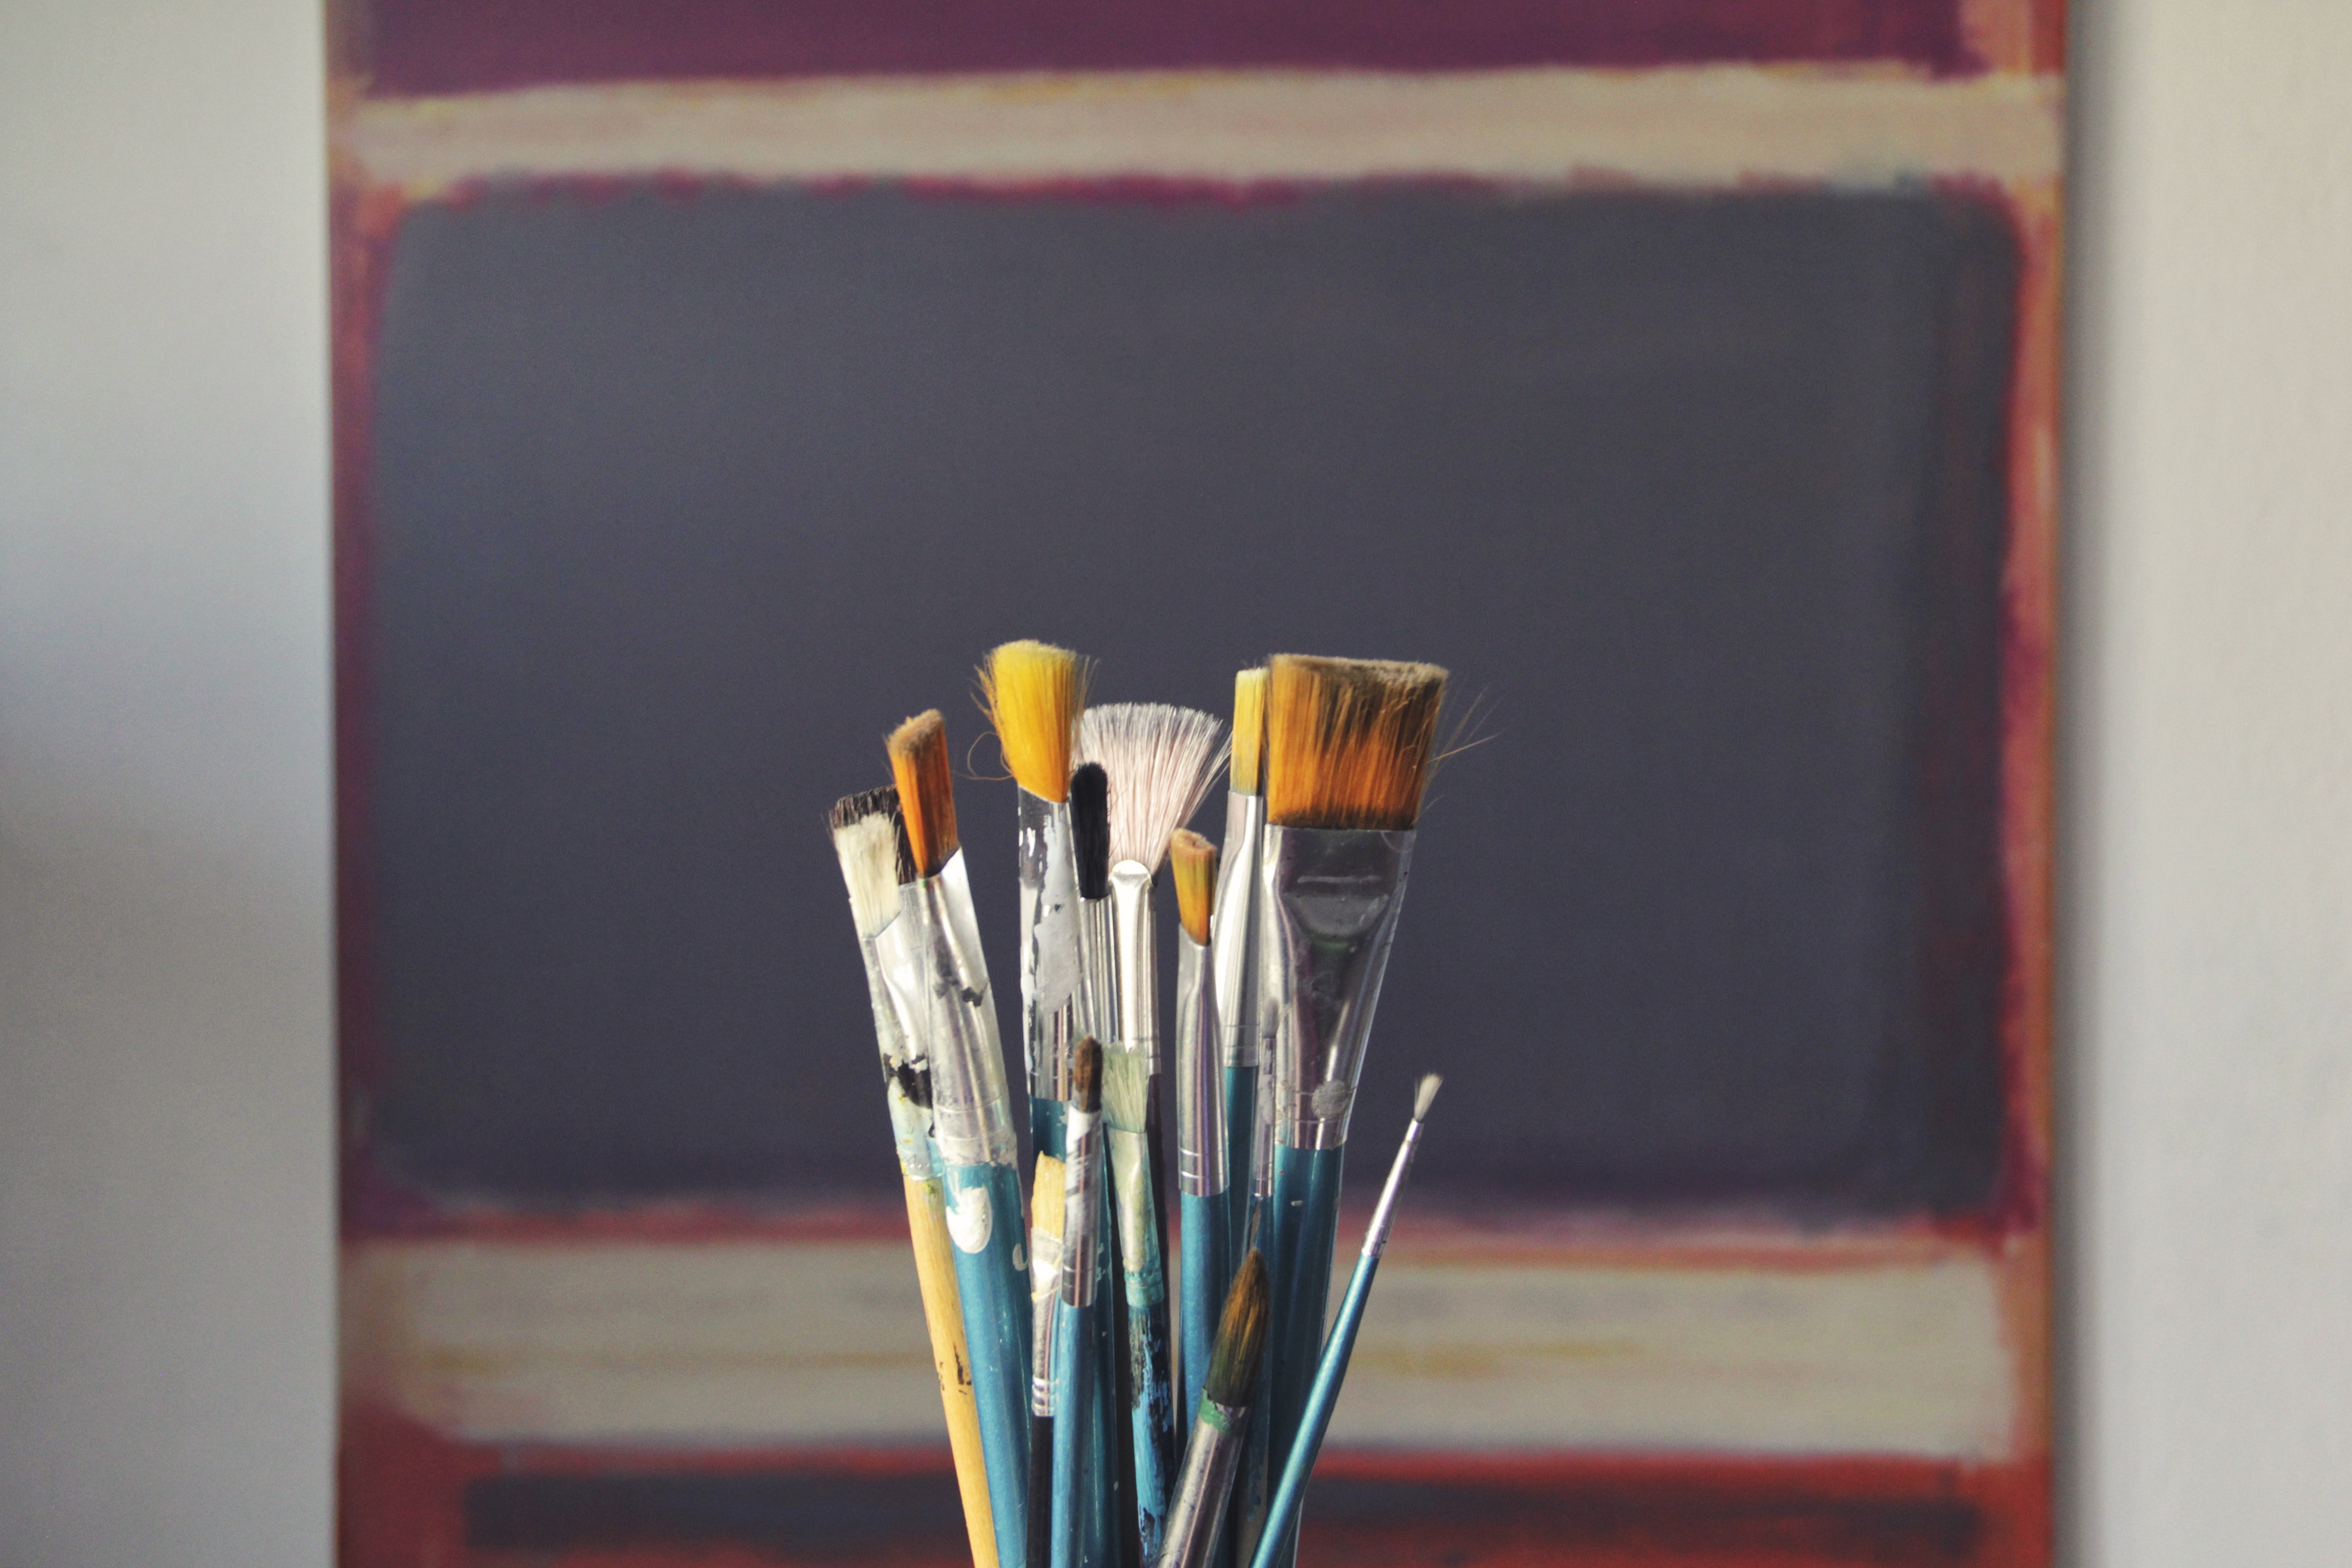 The 123's of art investing